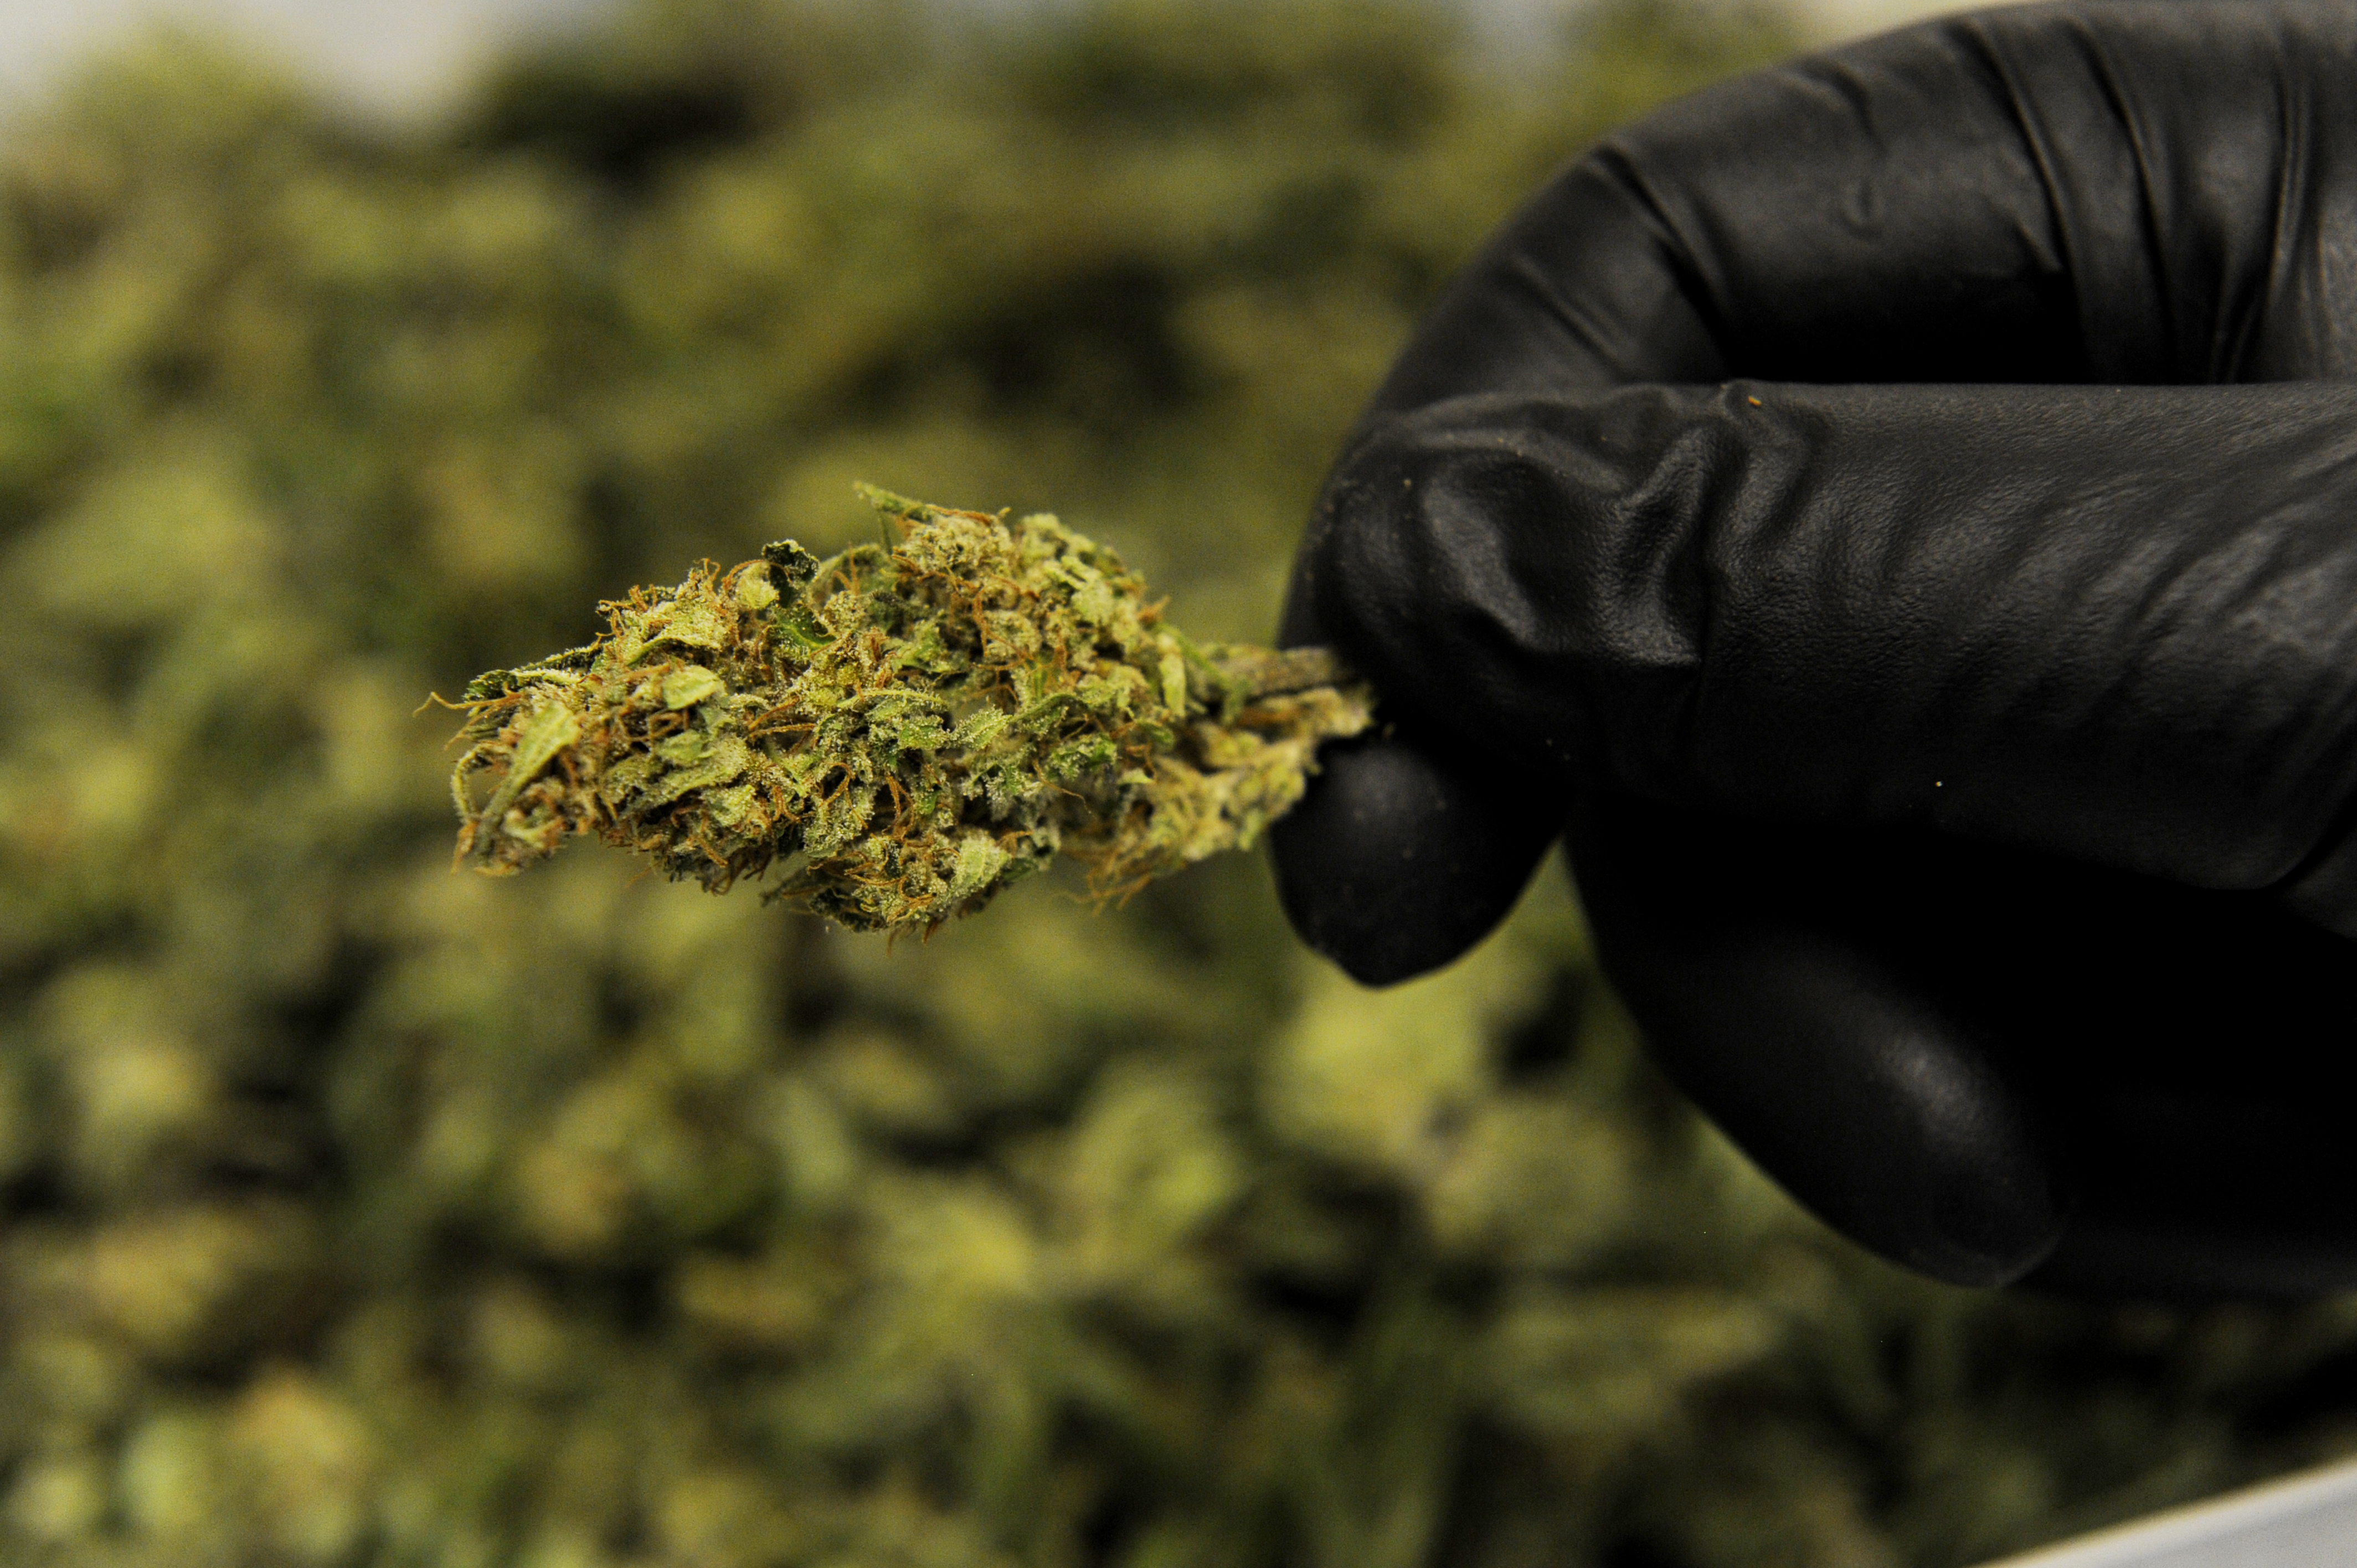 An employee displays trimmed bud from a High CBD hemp strain at Ambary Gardens in Colorado.